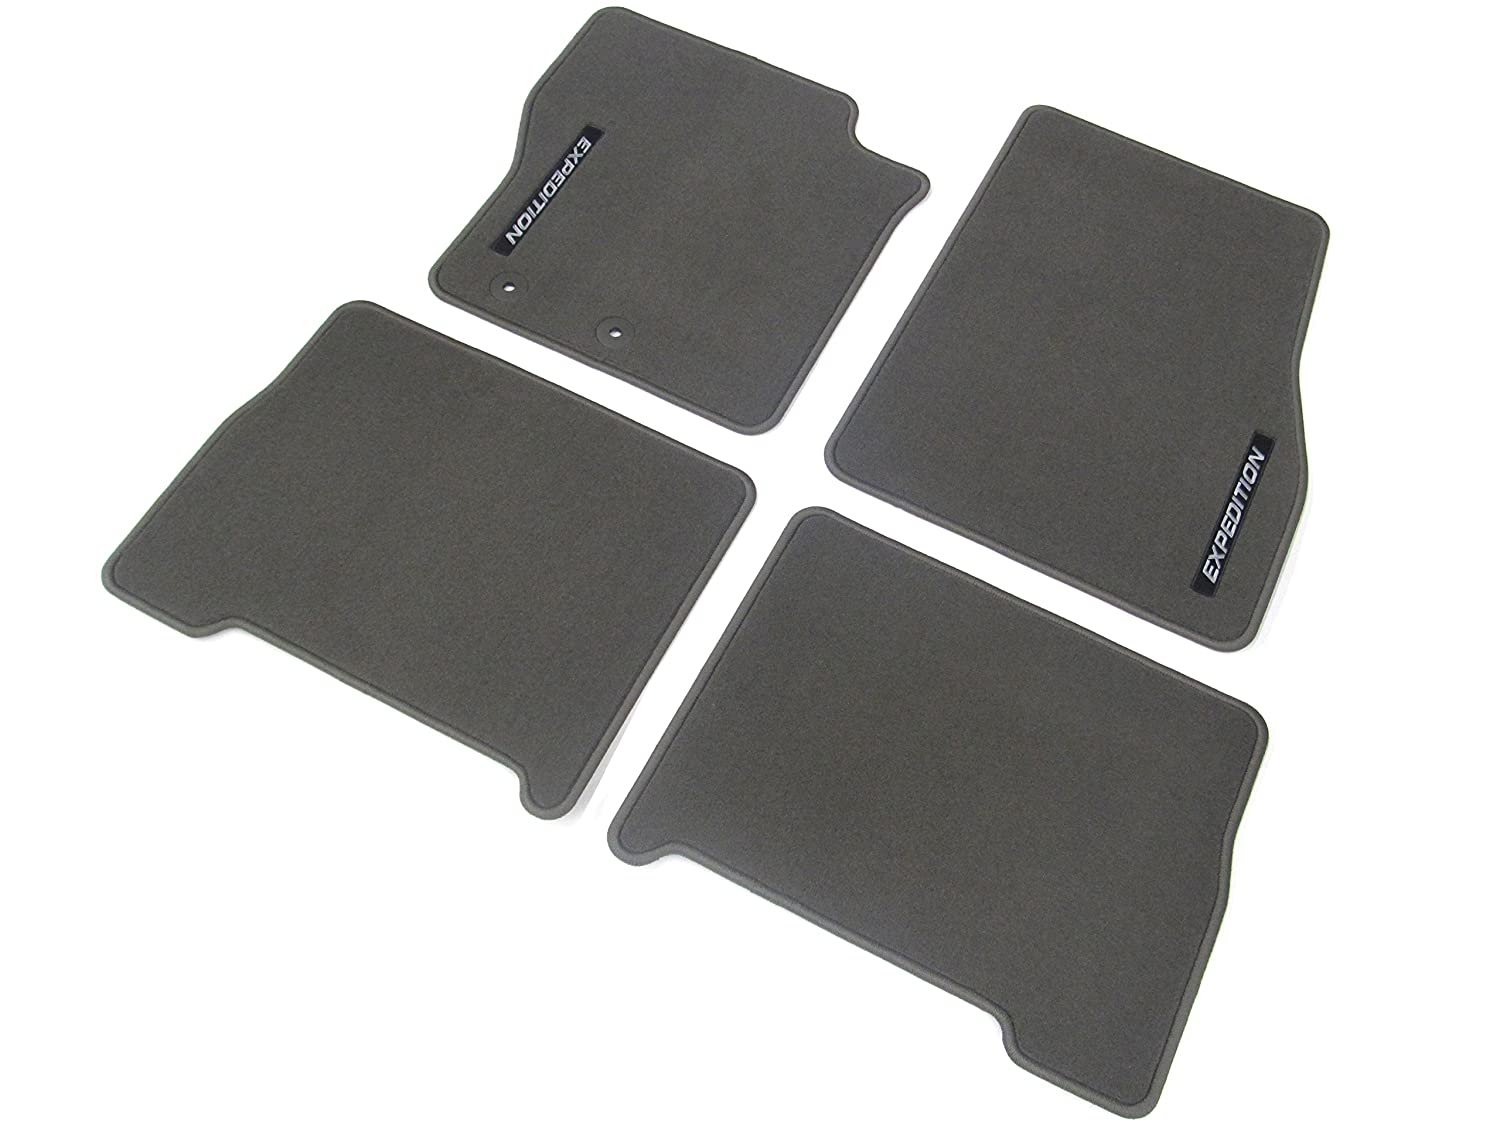 Rubber floor mats expedition - Amazon Com Ford Expedition Floor Mats Carpeted 4 Piece Greystone Front And Rear Automotive